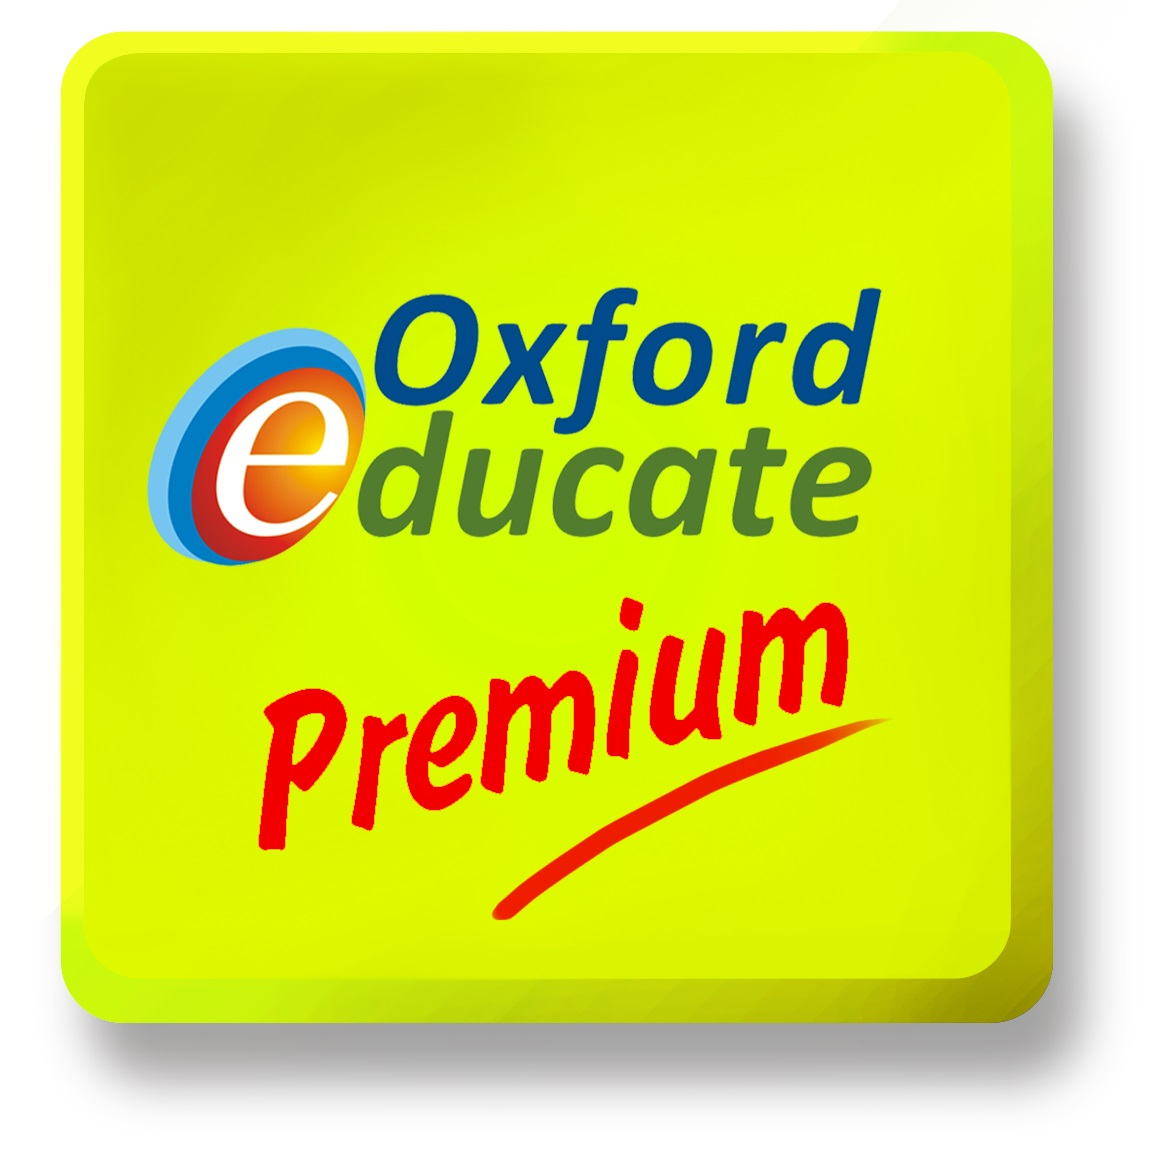 Oxford Educate